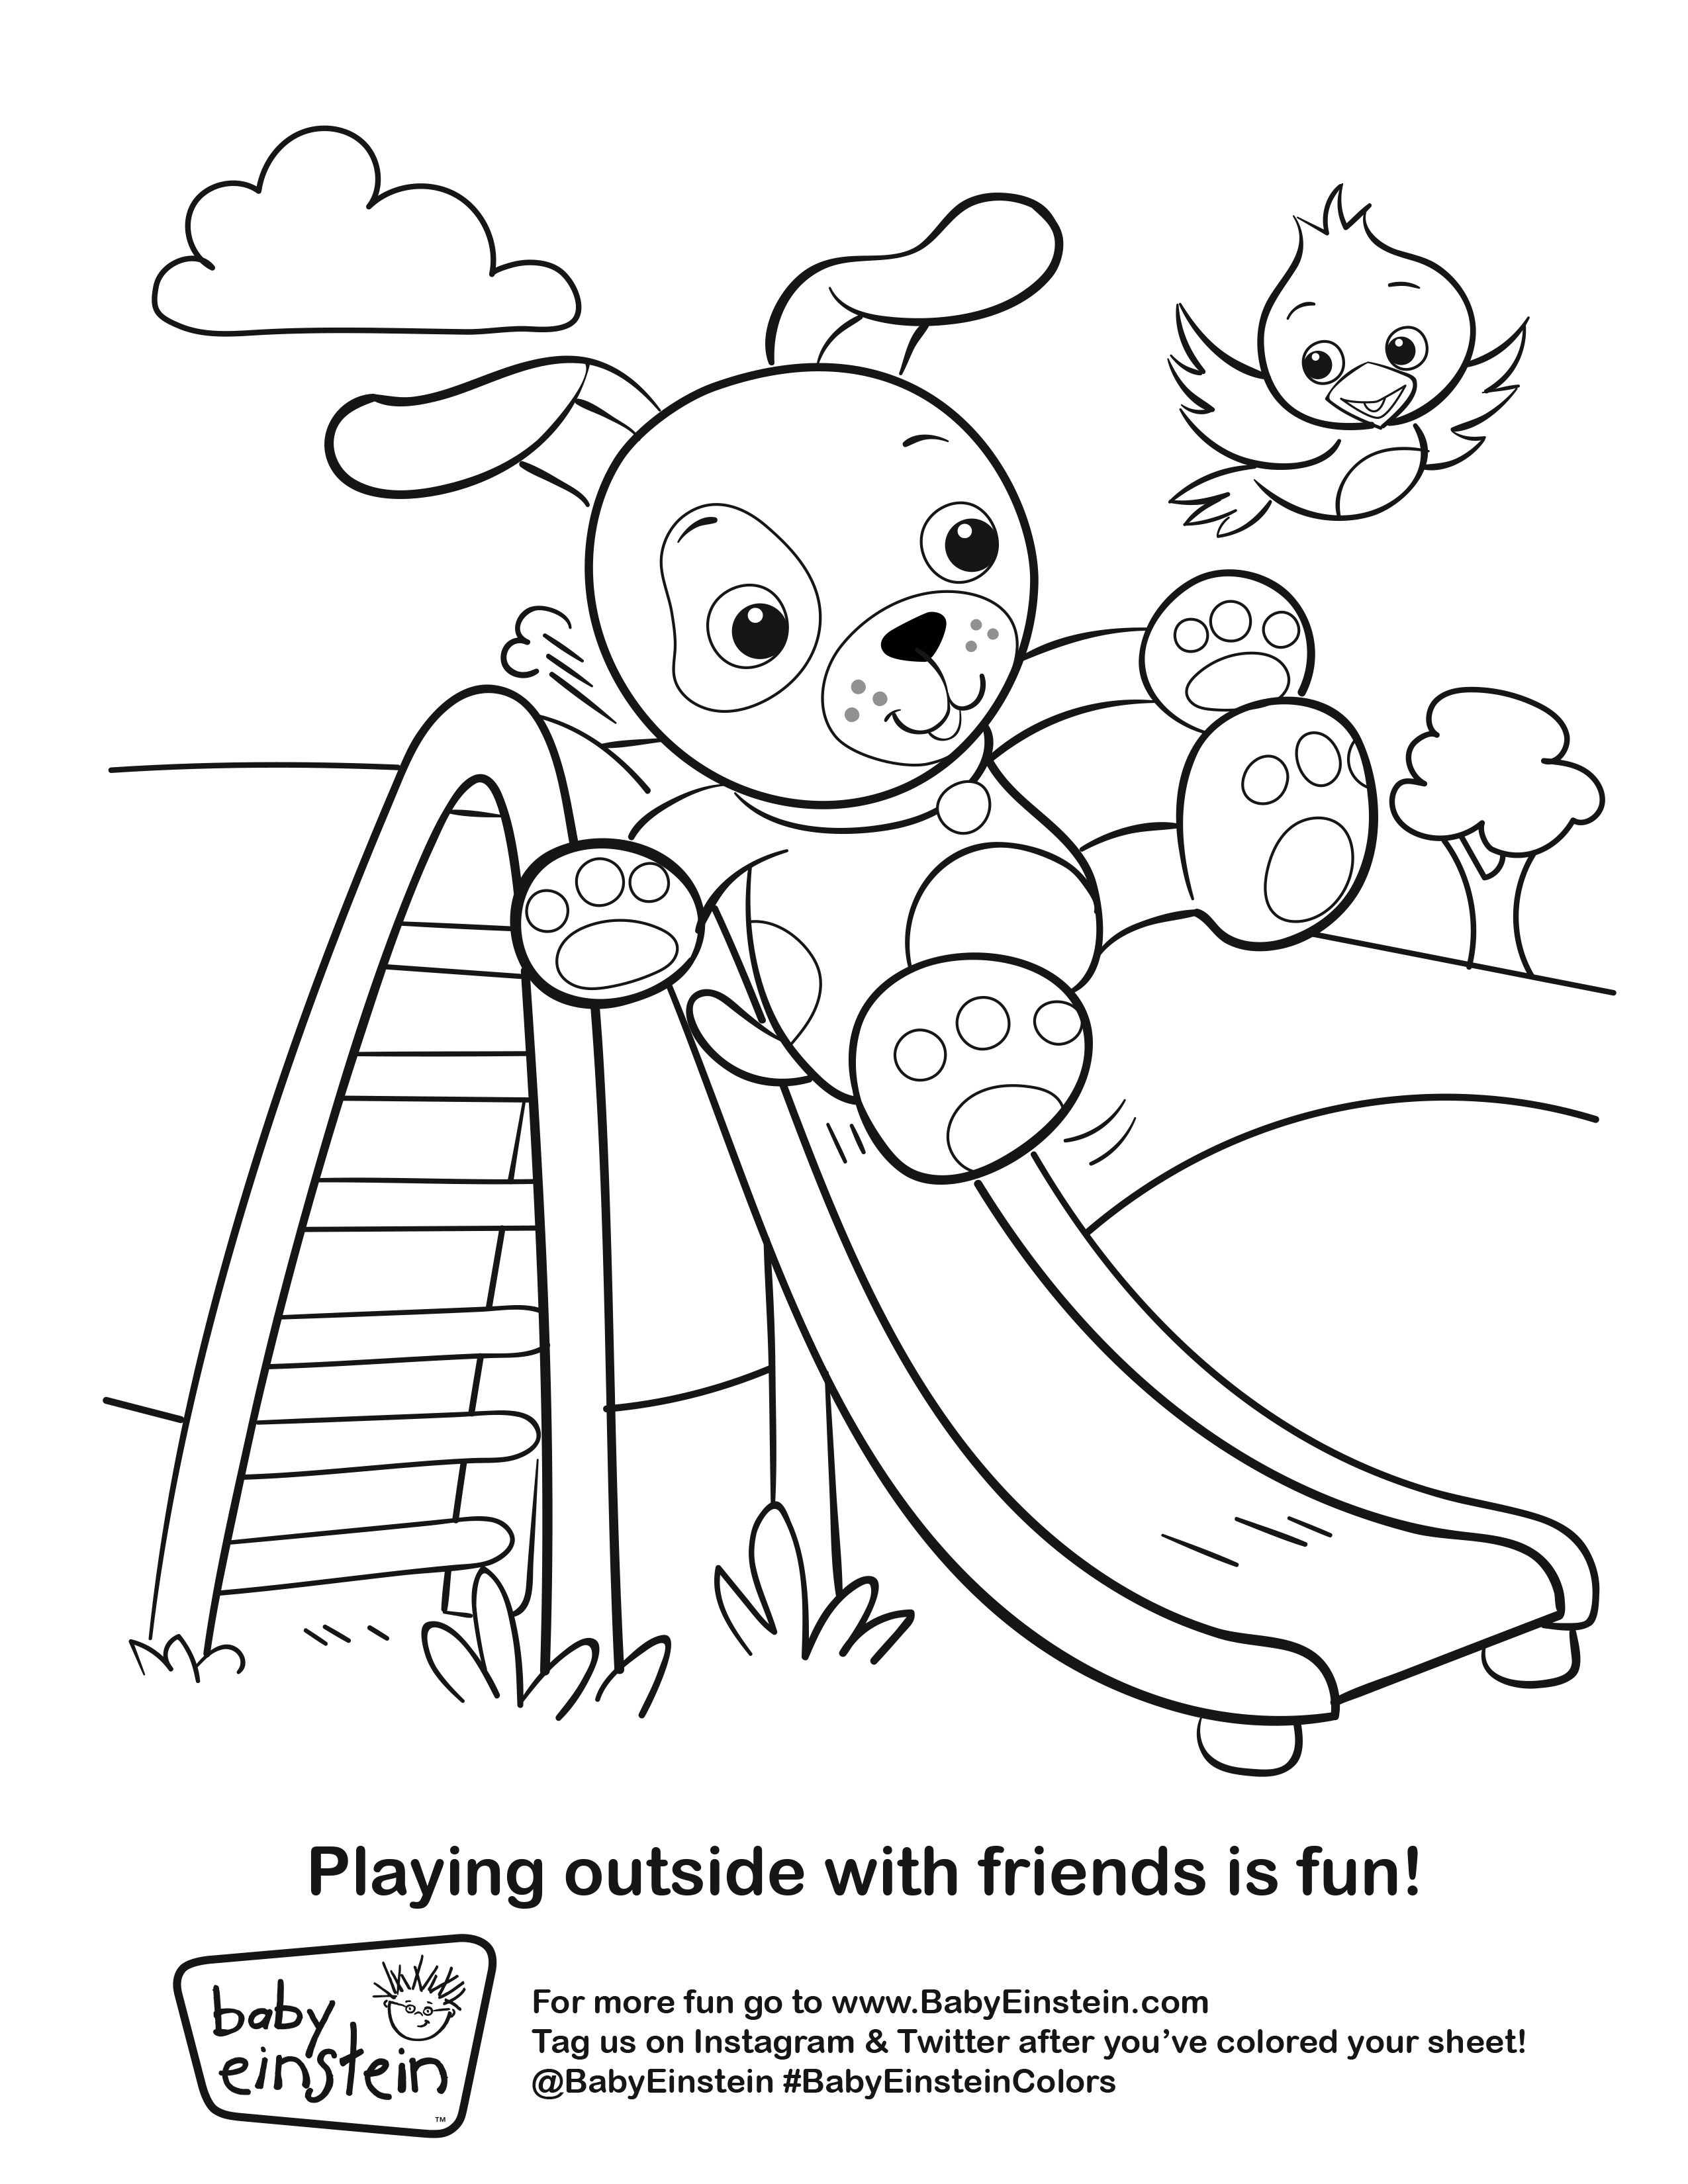 Summer Is Here Give Your Little Artist A Chance To Get Creative By Printing Out This Coloring Sheet Ba Baby Einstein Coloring Pages Coloring Pages For Kids